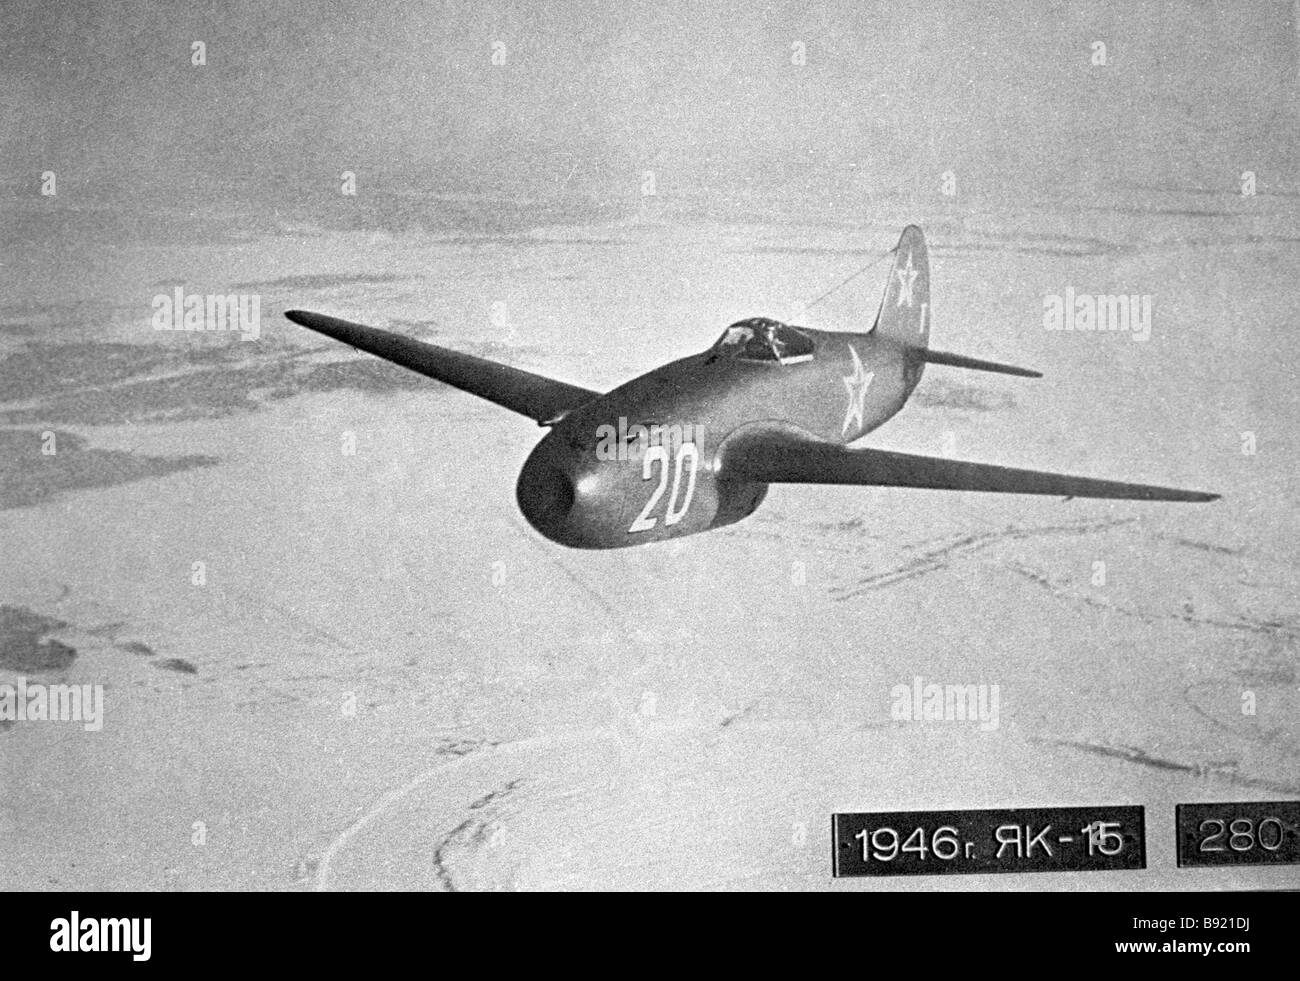 A reproduction of a photo of the Yak 15 fighter jet from the Monino Aviation Museum of the USSR Air Force - Stock Image